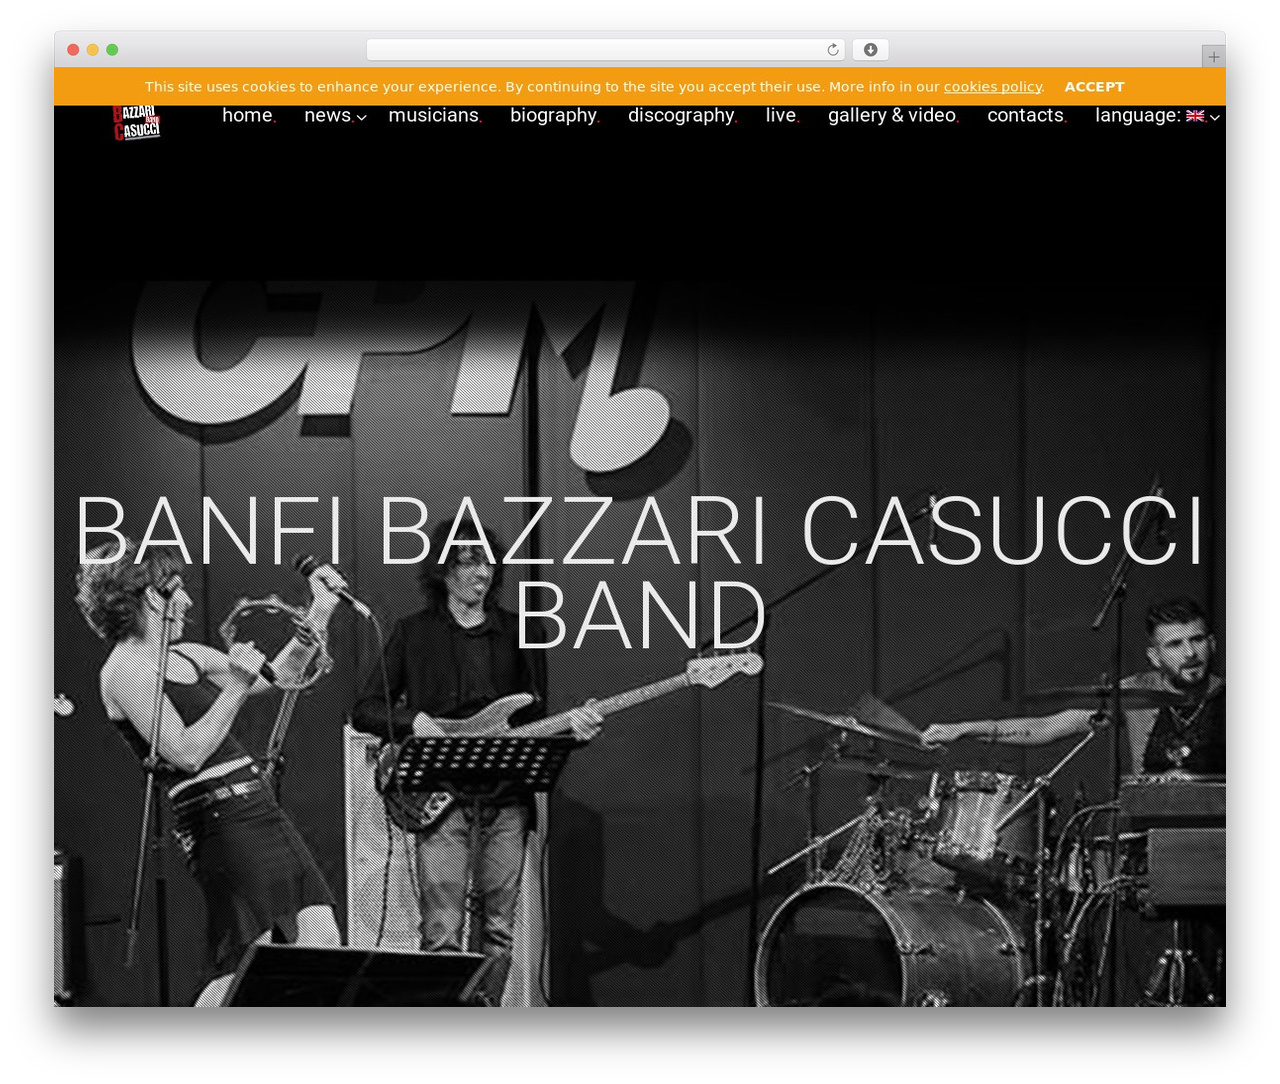 MUZIQ Jellythemes WordPress theme - banfiebazzariband.com